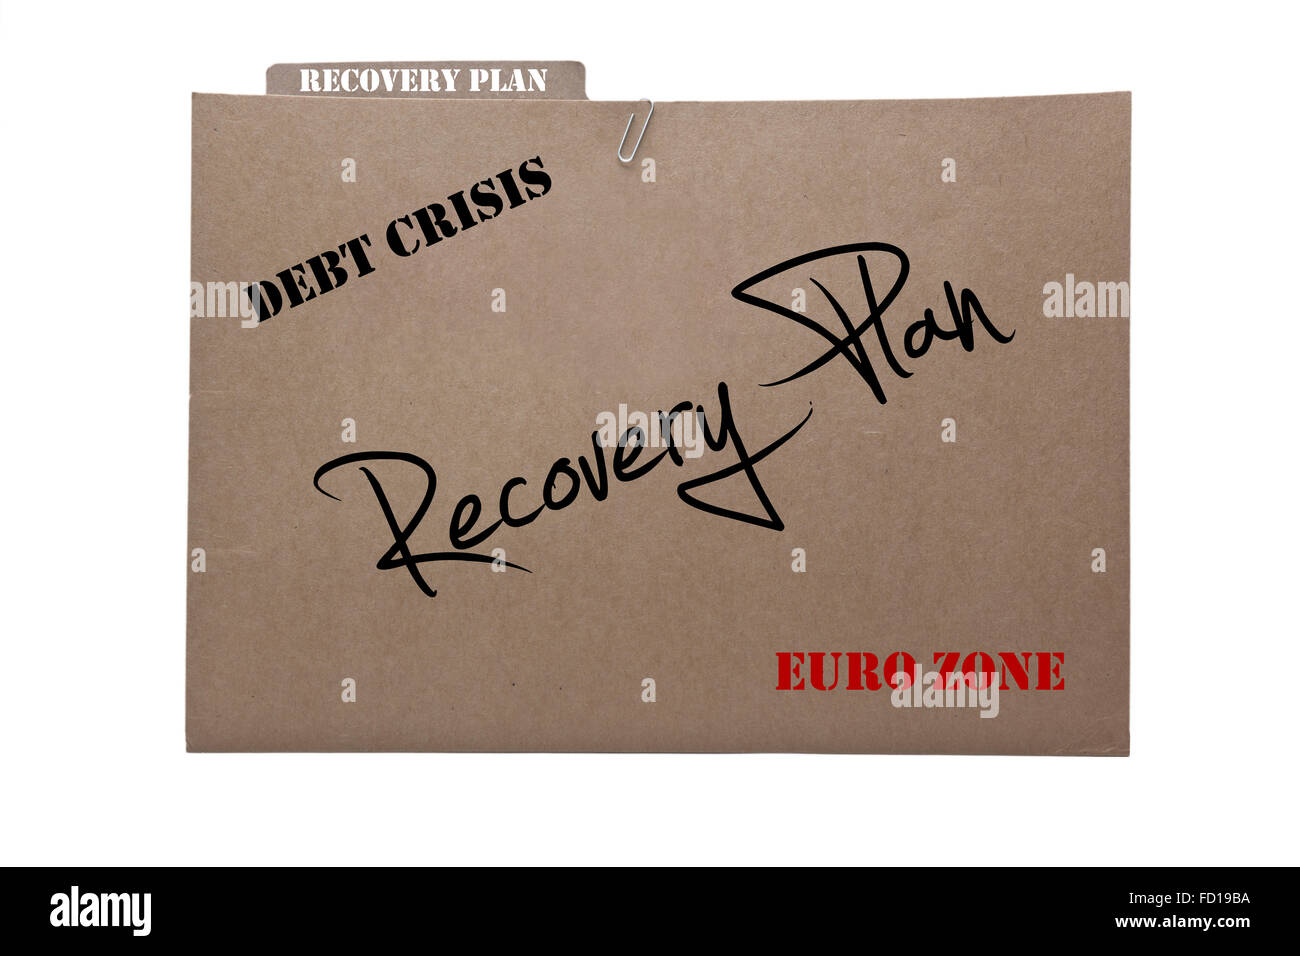 Disaster Recovery Plan - Stock Image